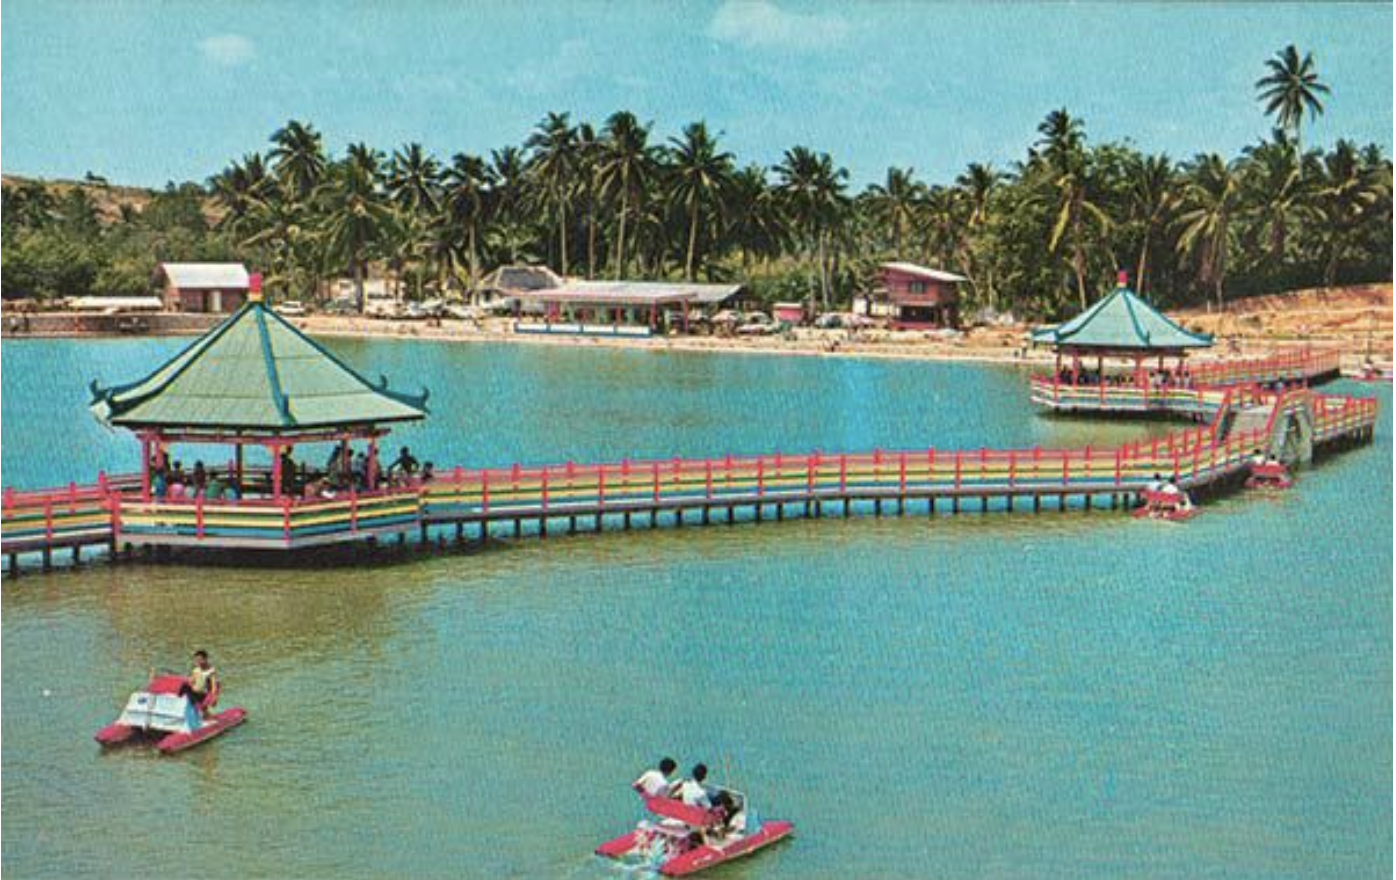 Golden Palace Holiday Resort, 1970s. Courtesy of National Museum of Singapore, National Heritage Board. Photo courtesy: NHB